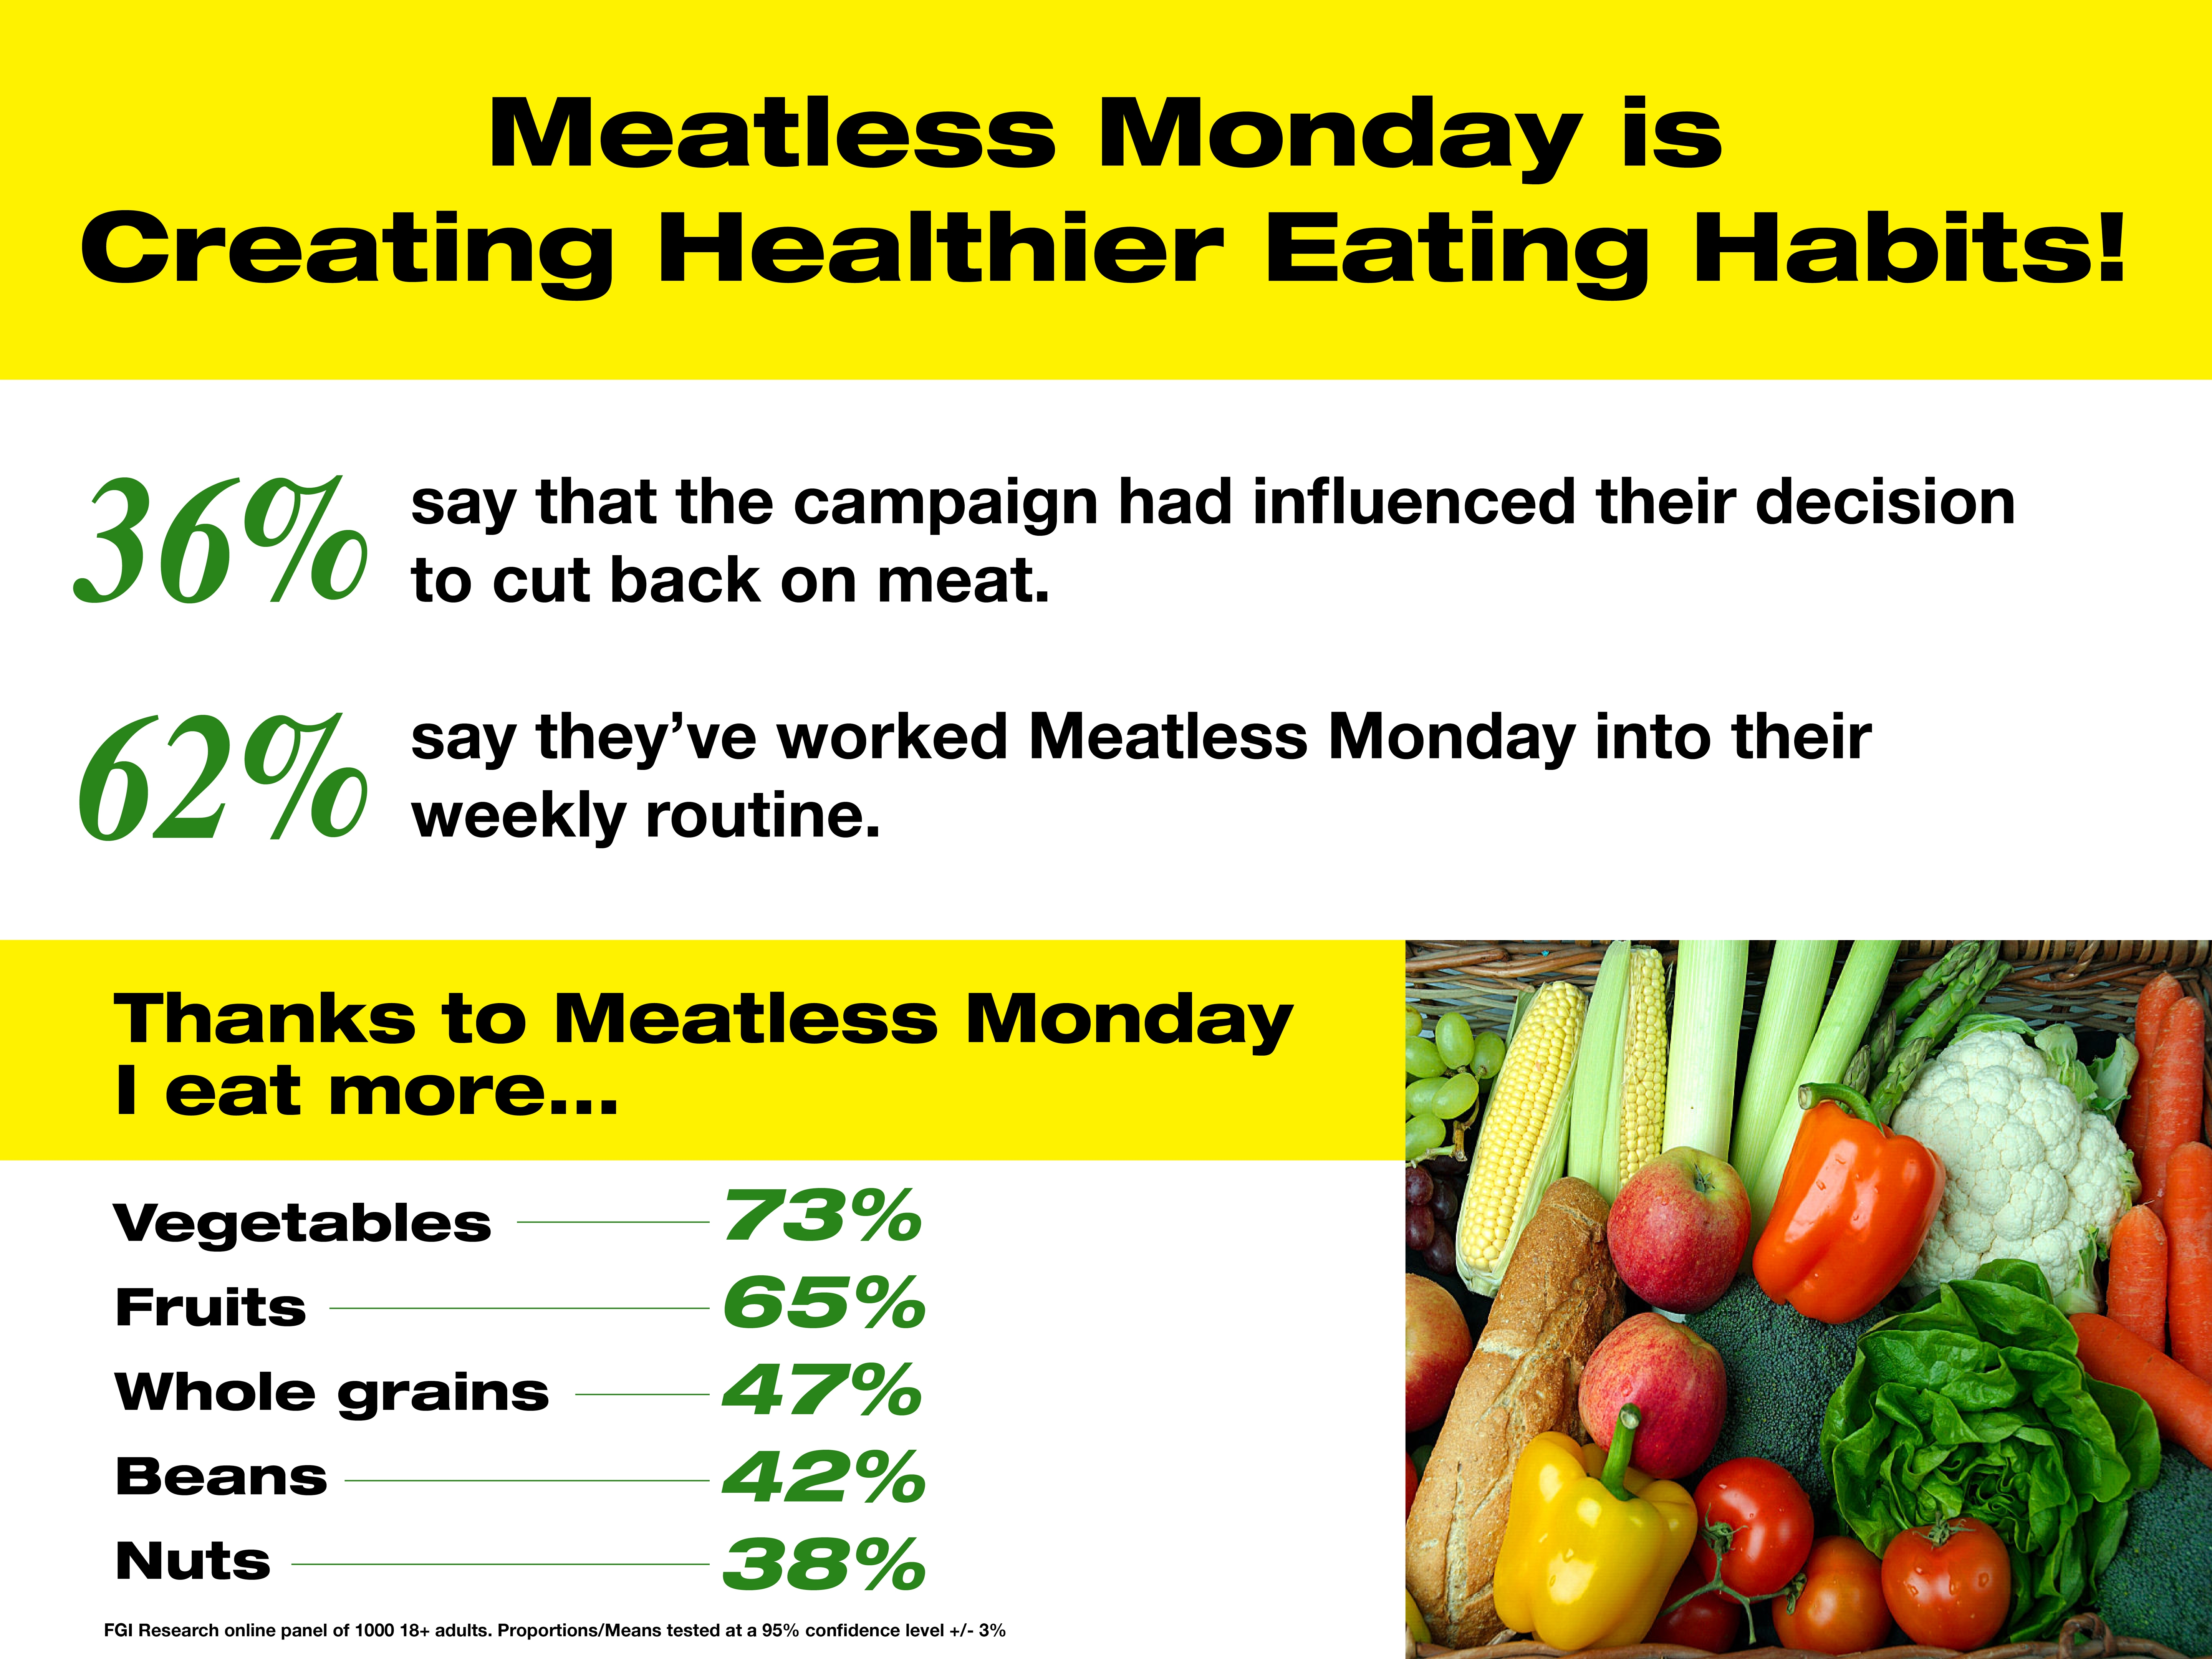 meatless monday In addition to the environmental benefits, research shows cutting back on meat may have a host of health benefits join the meatless monday movement and enjoy these healthy vegetarian recipes including vegetarian pizza recipes, tofu recipes, vegetarian pasta recipes and more meatless meals.